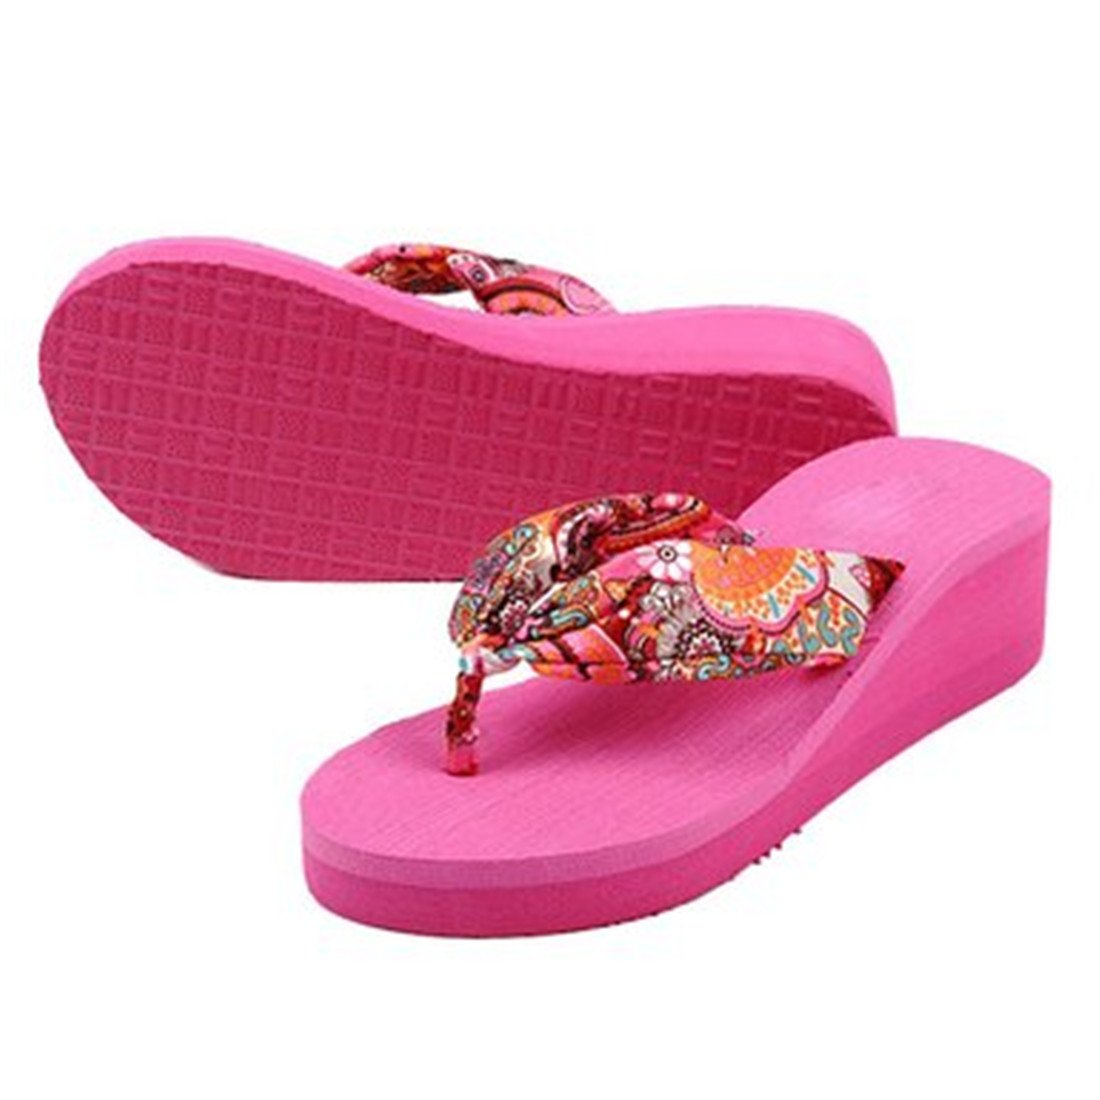 Desconocido Chaussons , Desconocido Chaussons pour femme rosa rosa (b) 82ffcdb - latesttechnology.space